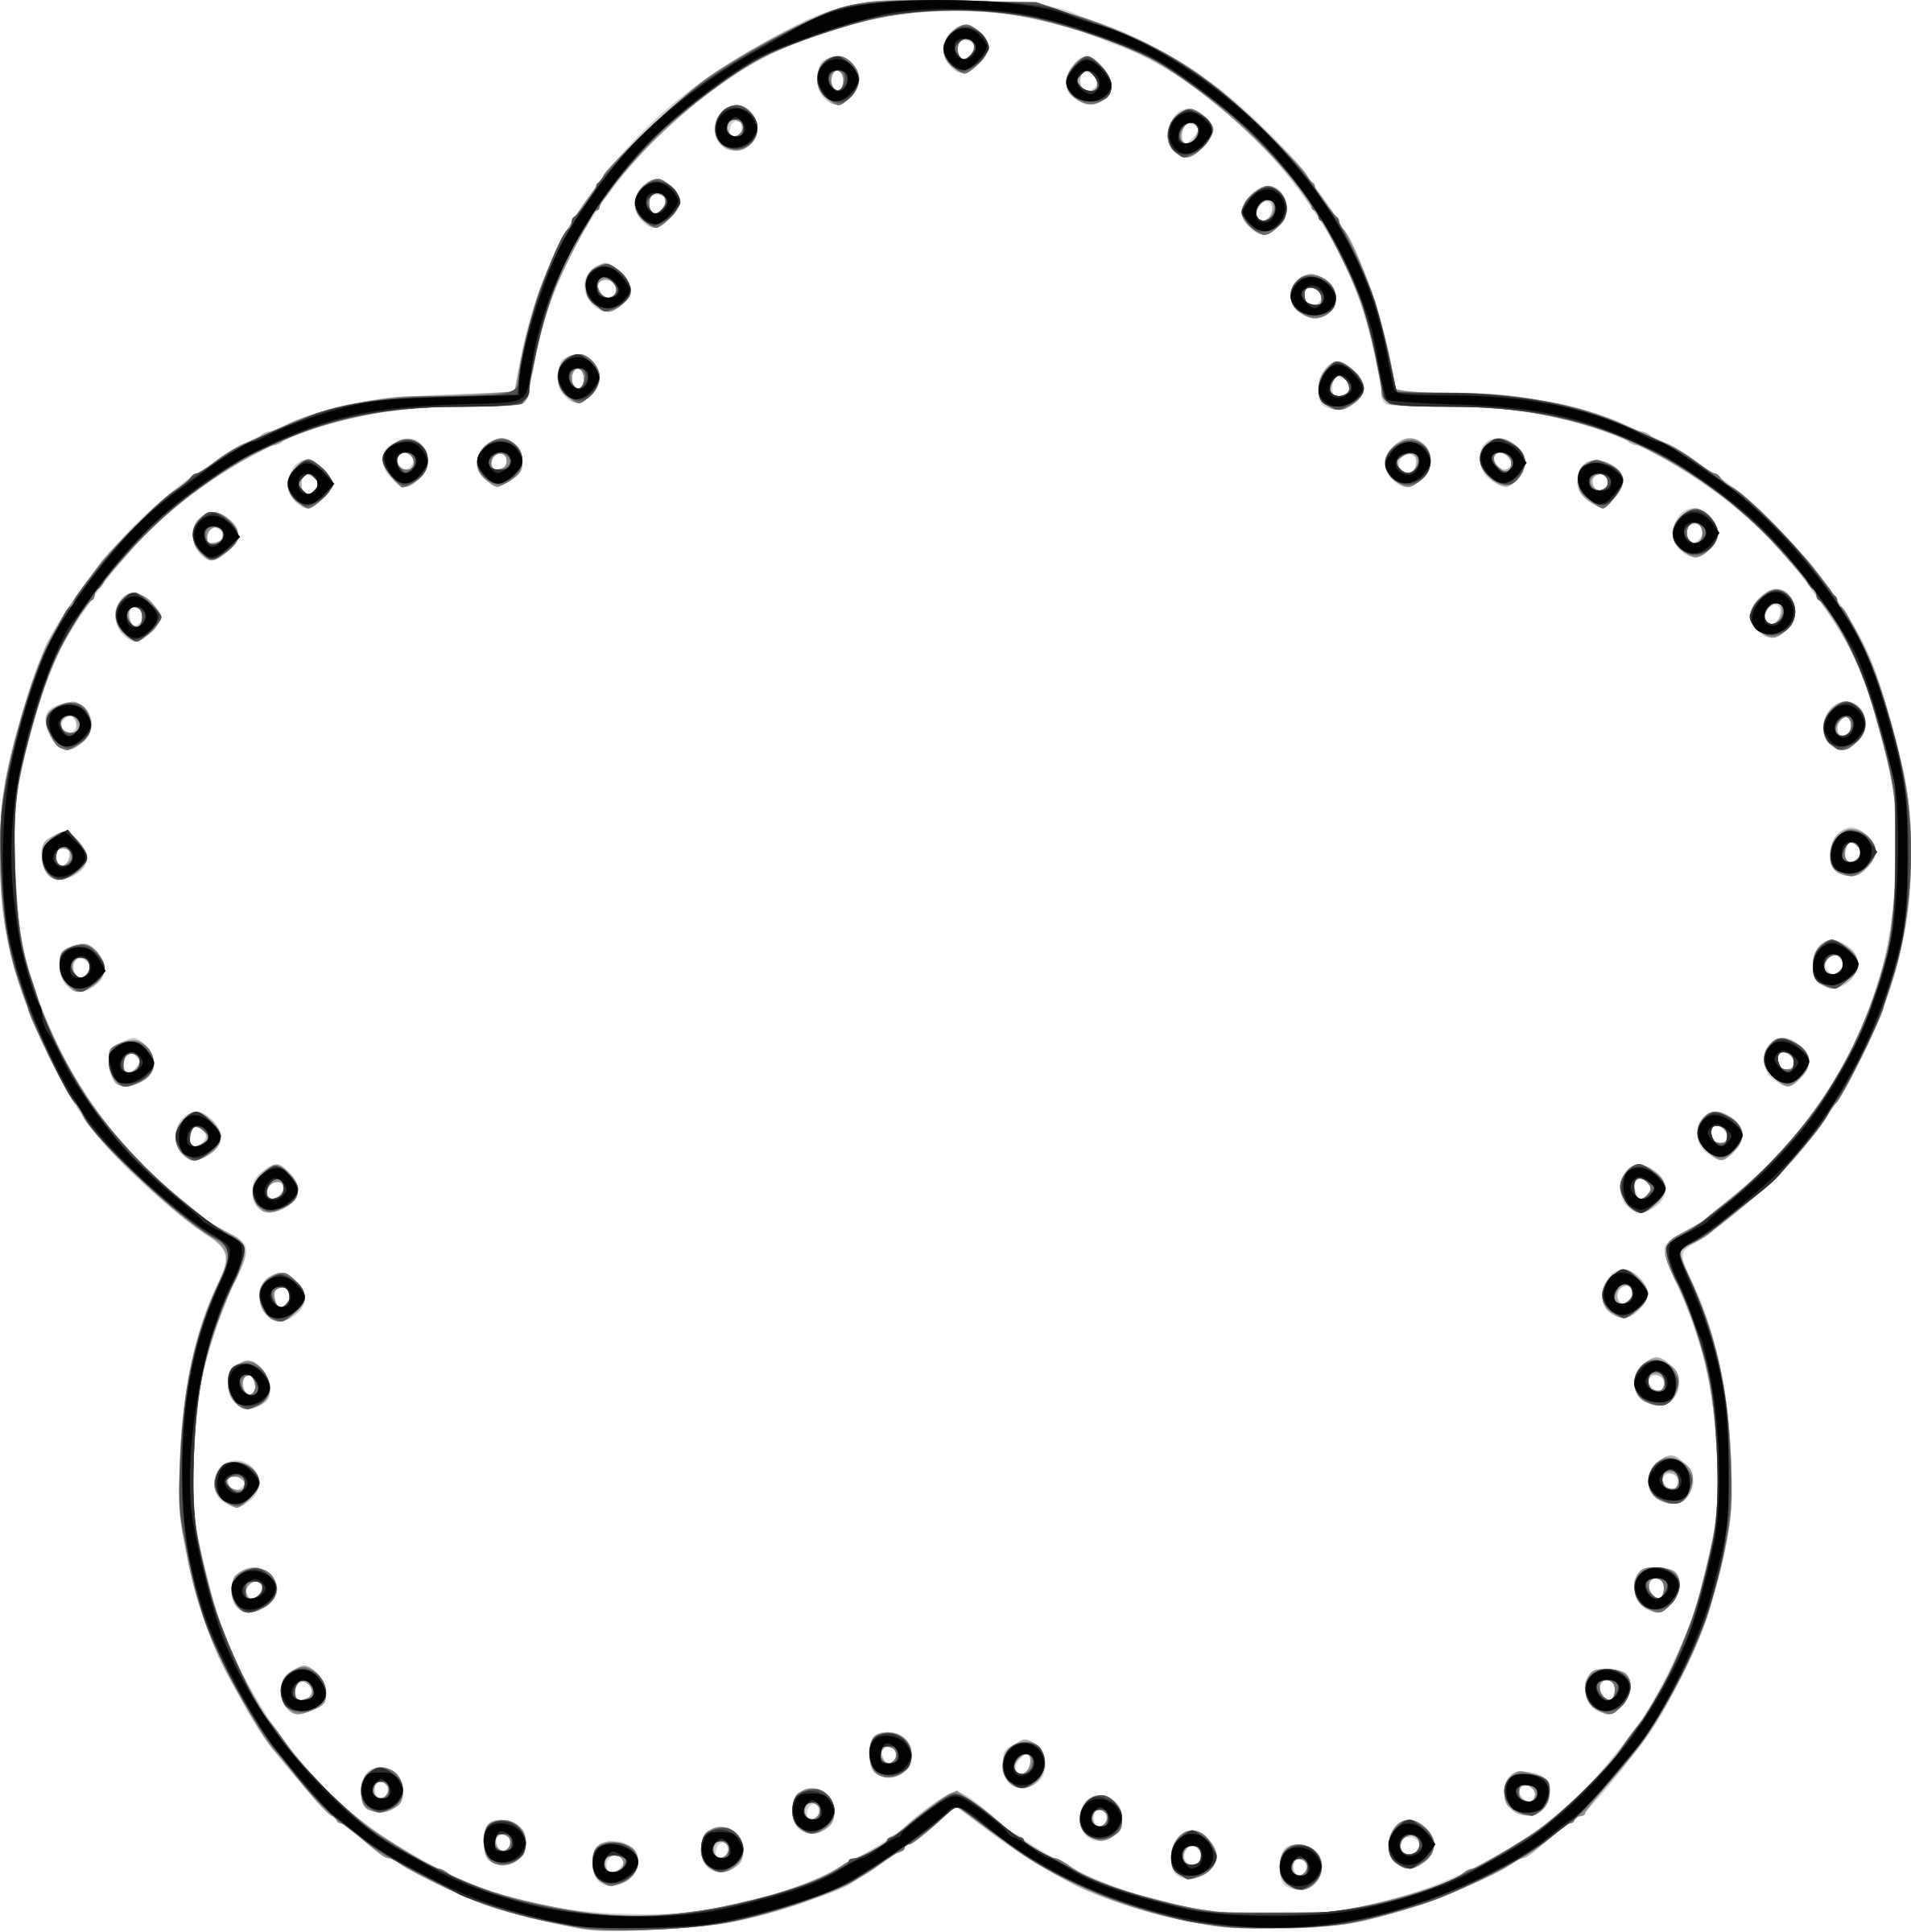 Flower petal outline clipart image Clipart - Flower 5 Scallop Circle Background, eyelets image